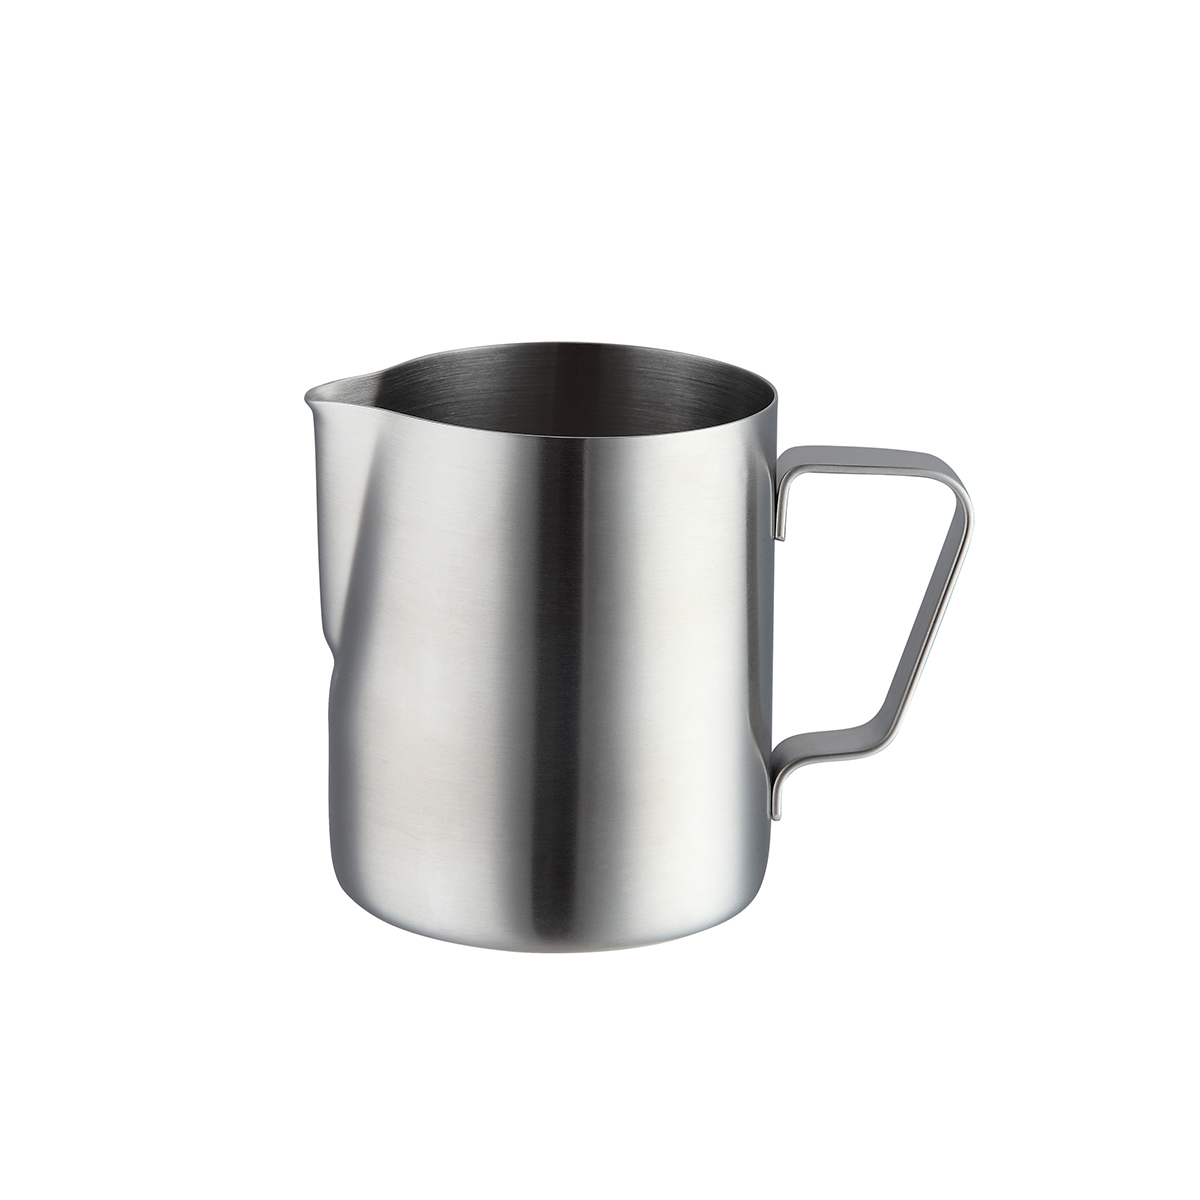 Hot Selling Stainless Steel  Milk Frothing Pitcher Espresso Milk Jug